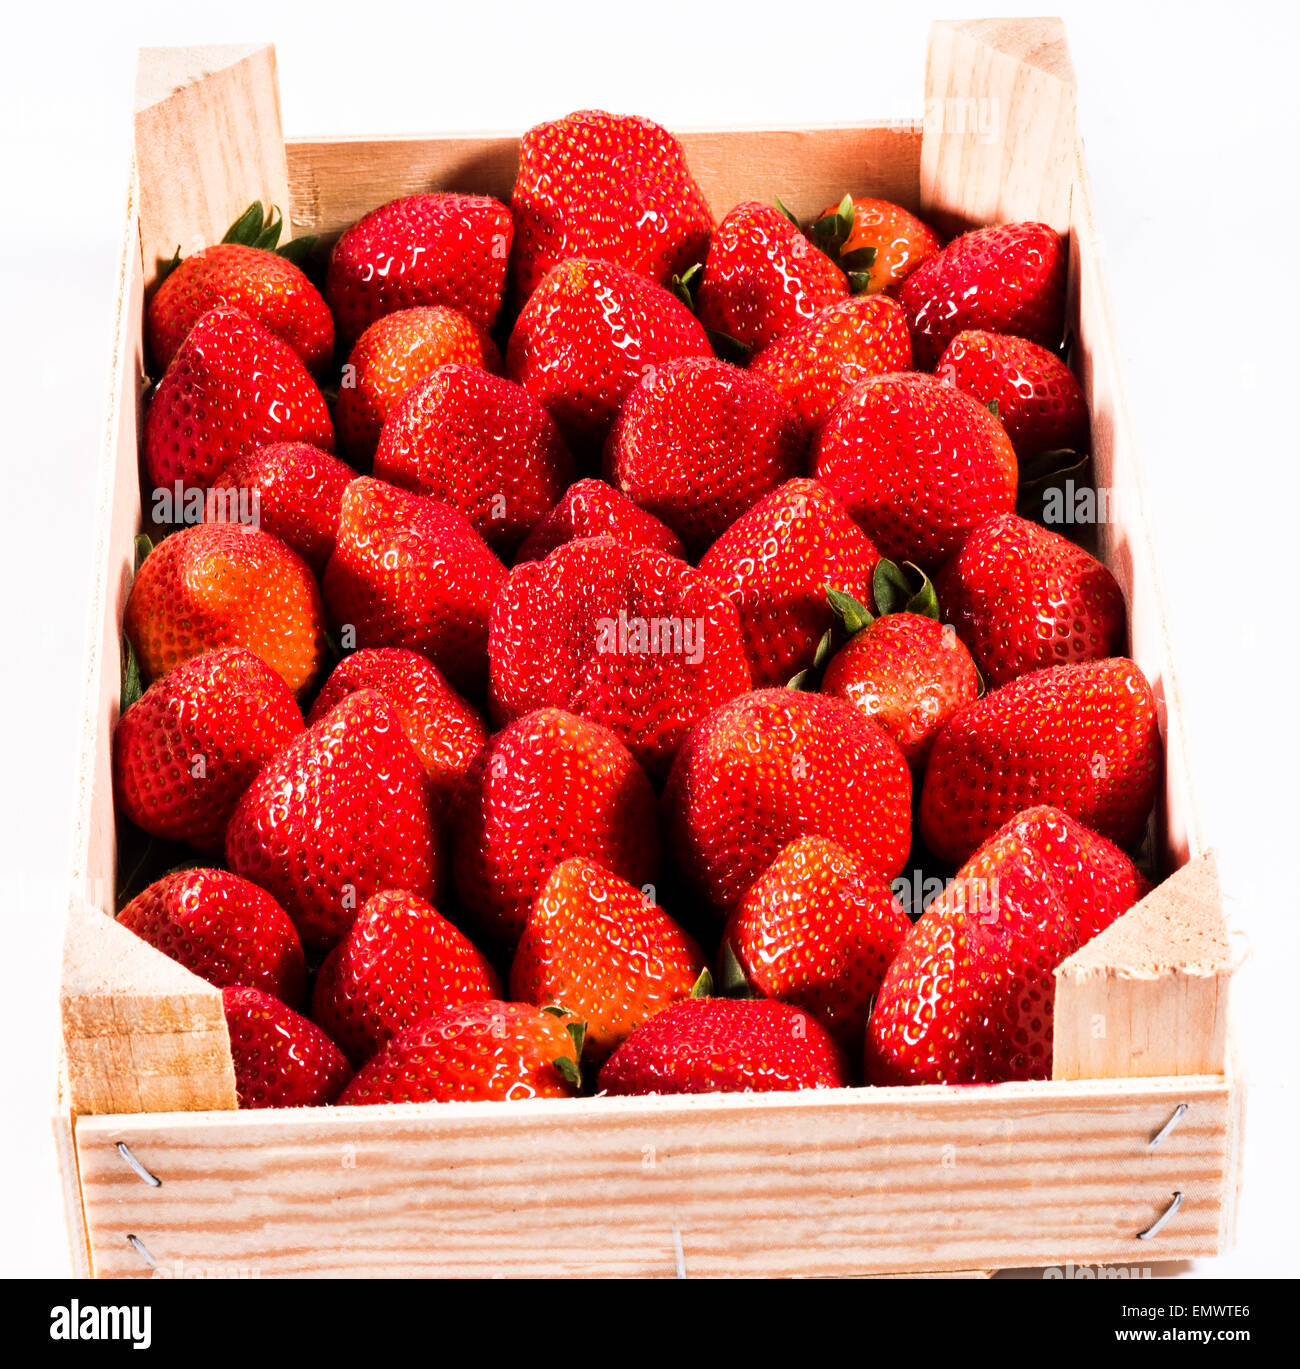 Strawberry, fresh strawberries in the wooden box in an ecological nature healthy food fruit valuable red biodynamic - Stock Image